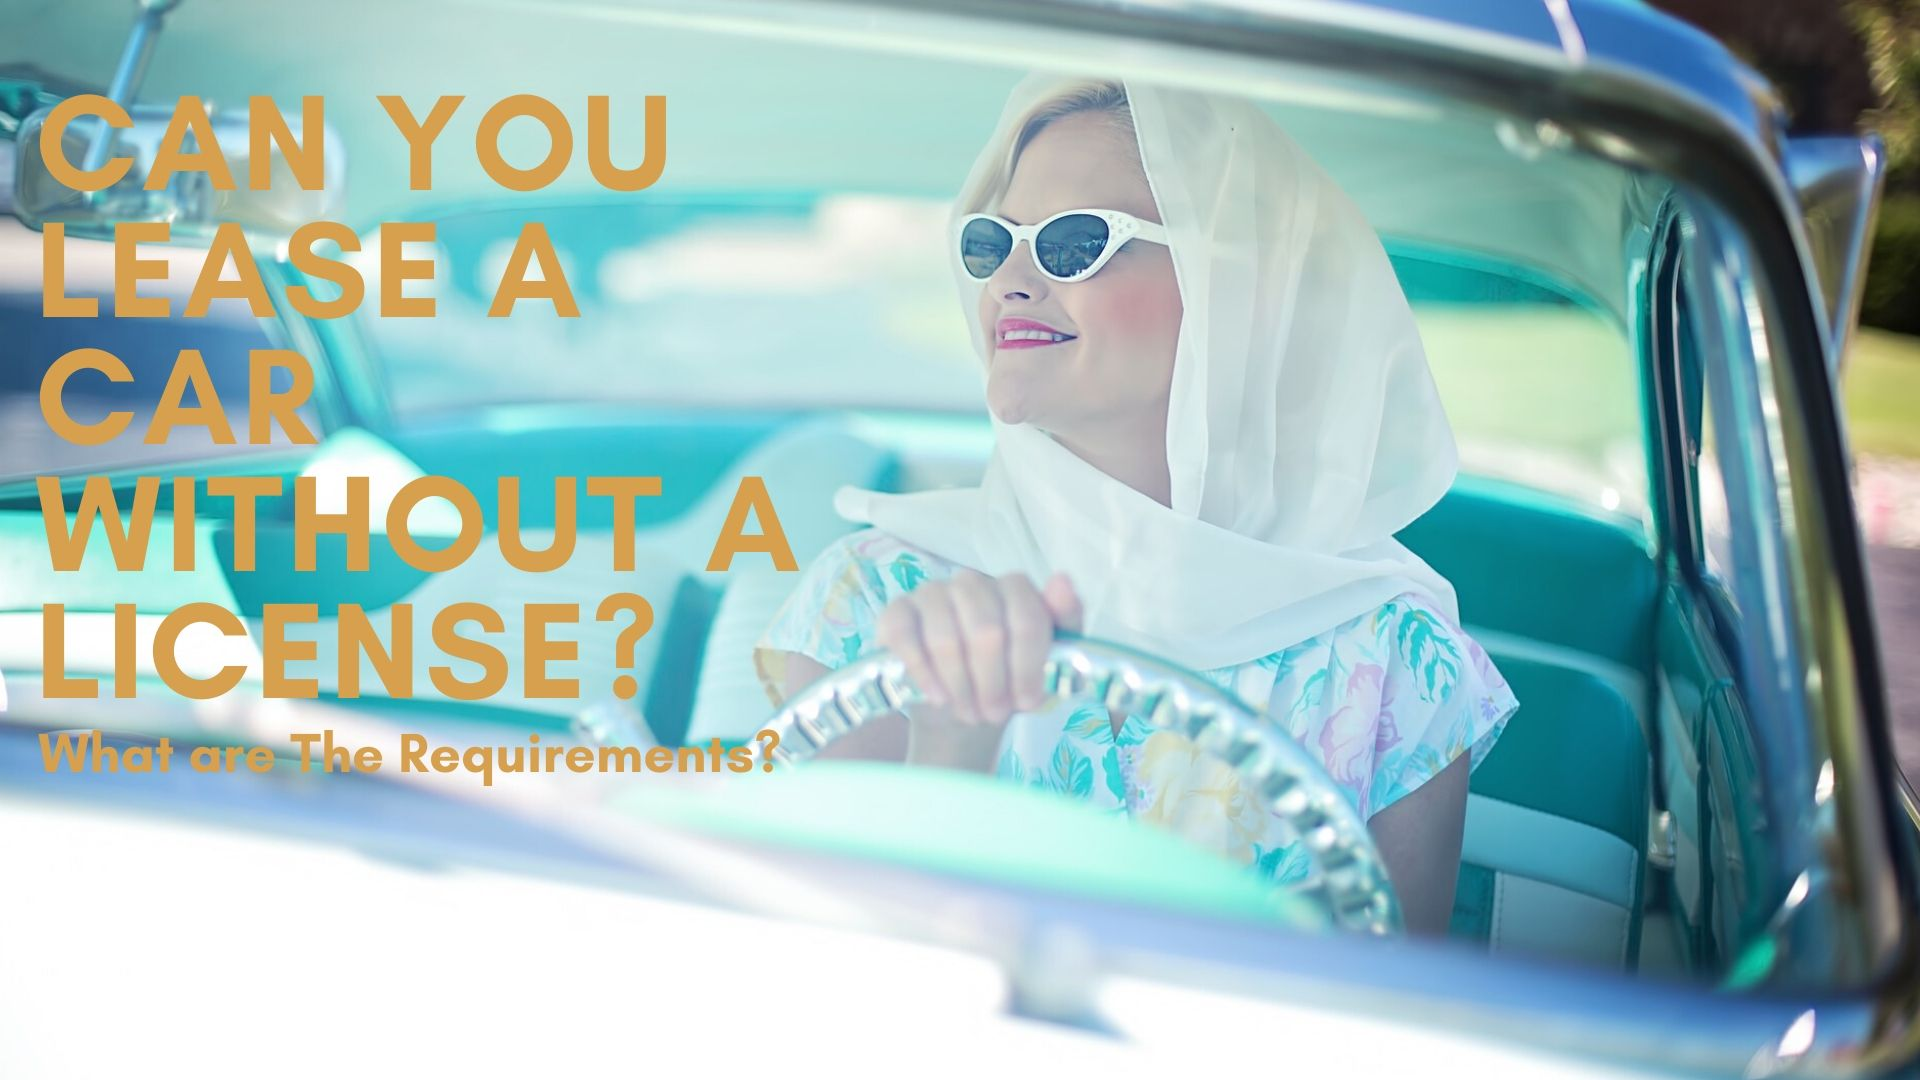 Can You Lease a Car Without a License